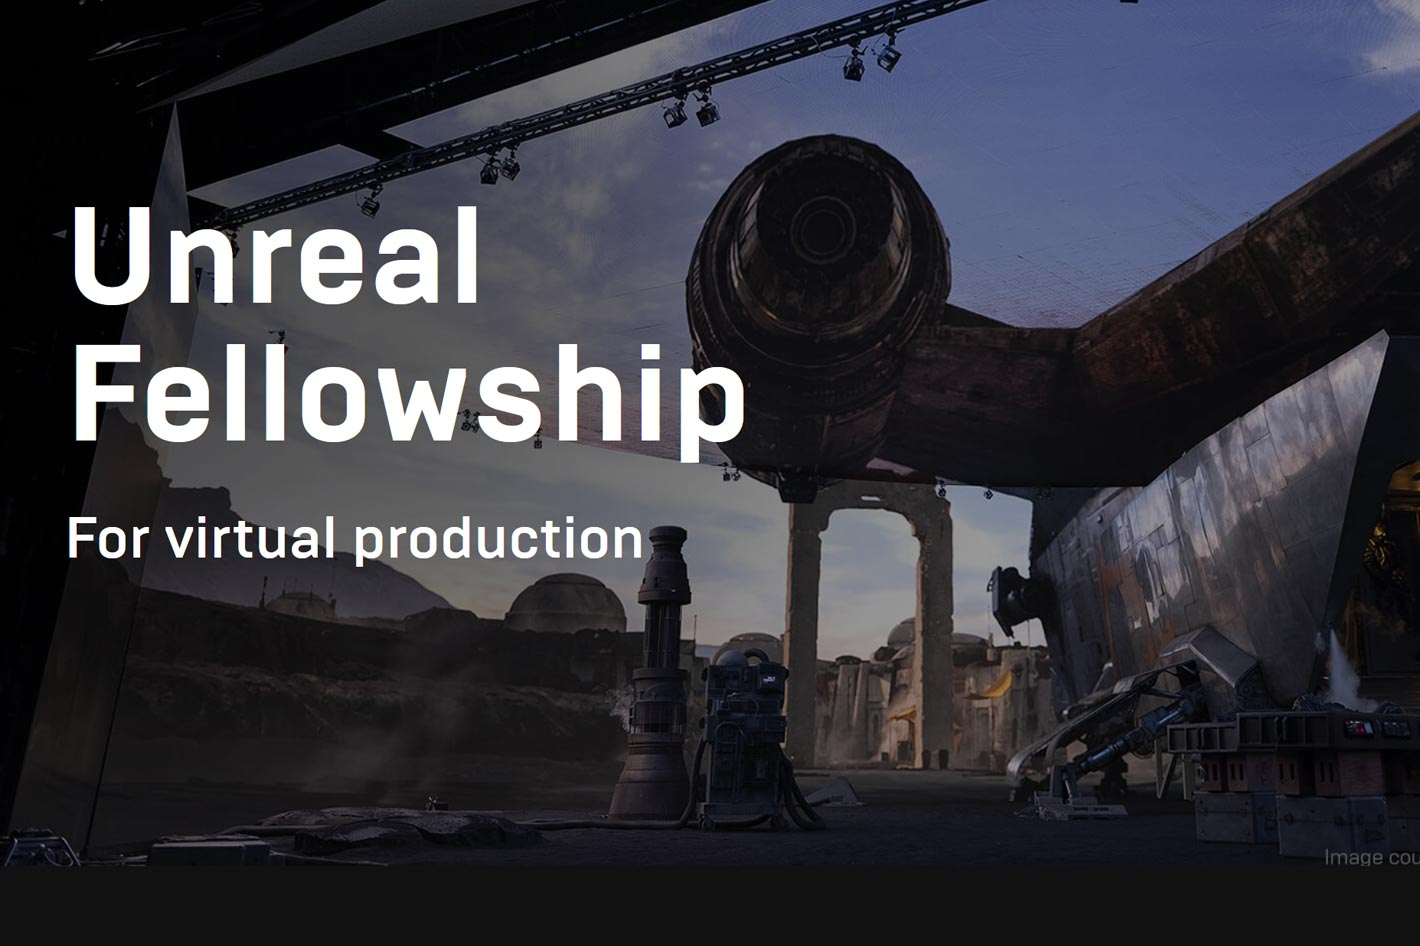 The Unreal Fellowship for film, VFX, and animation professionals